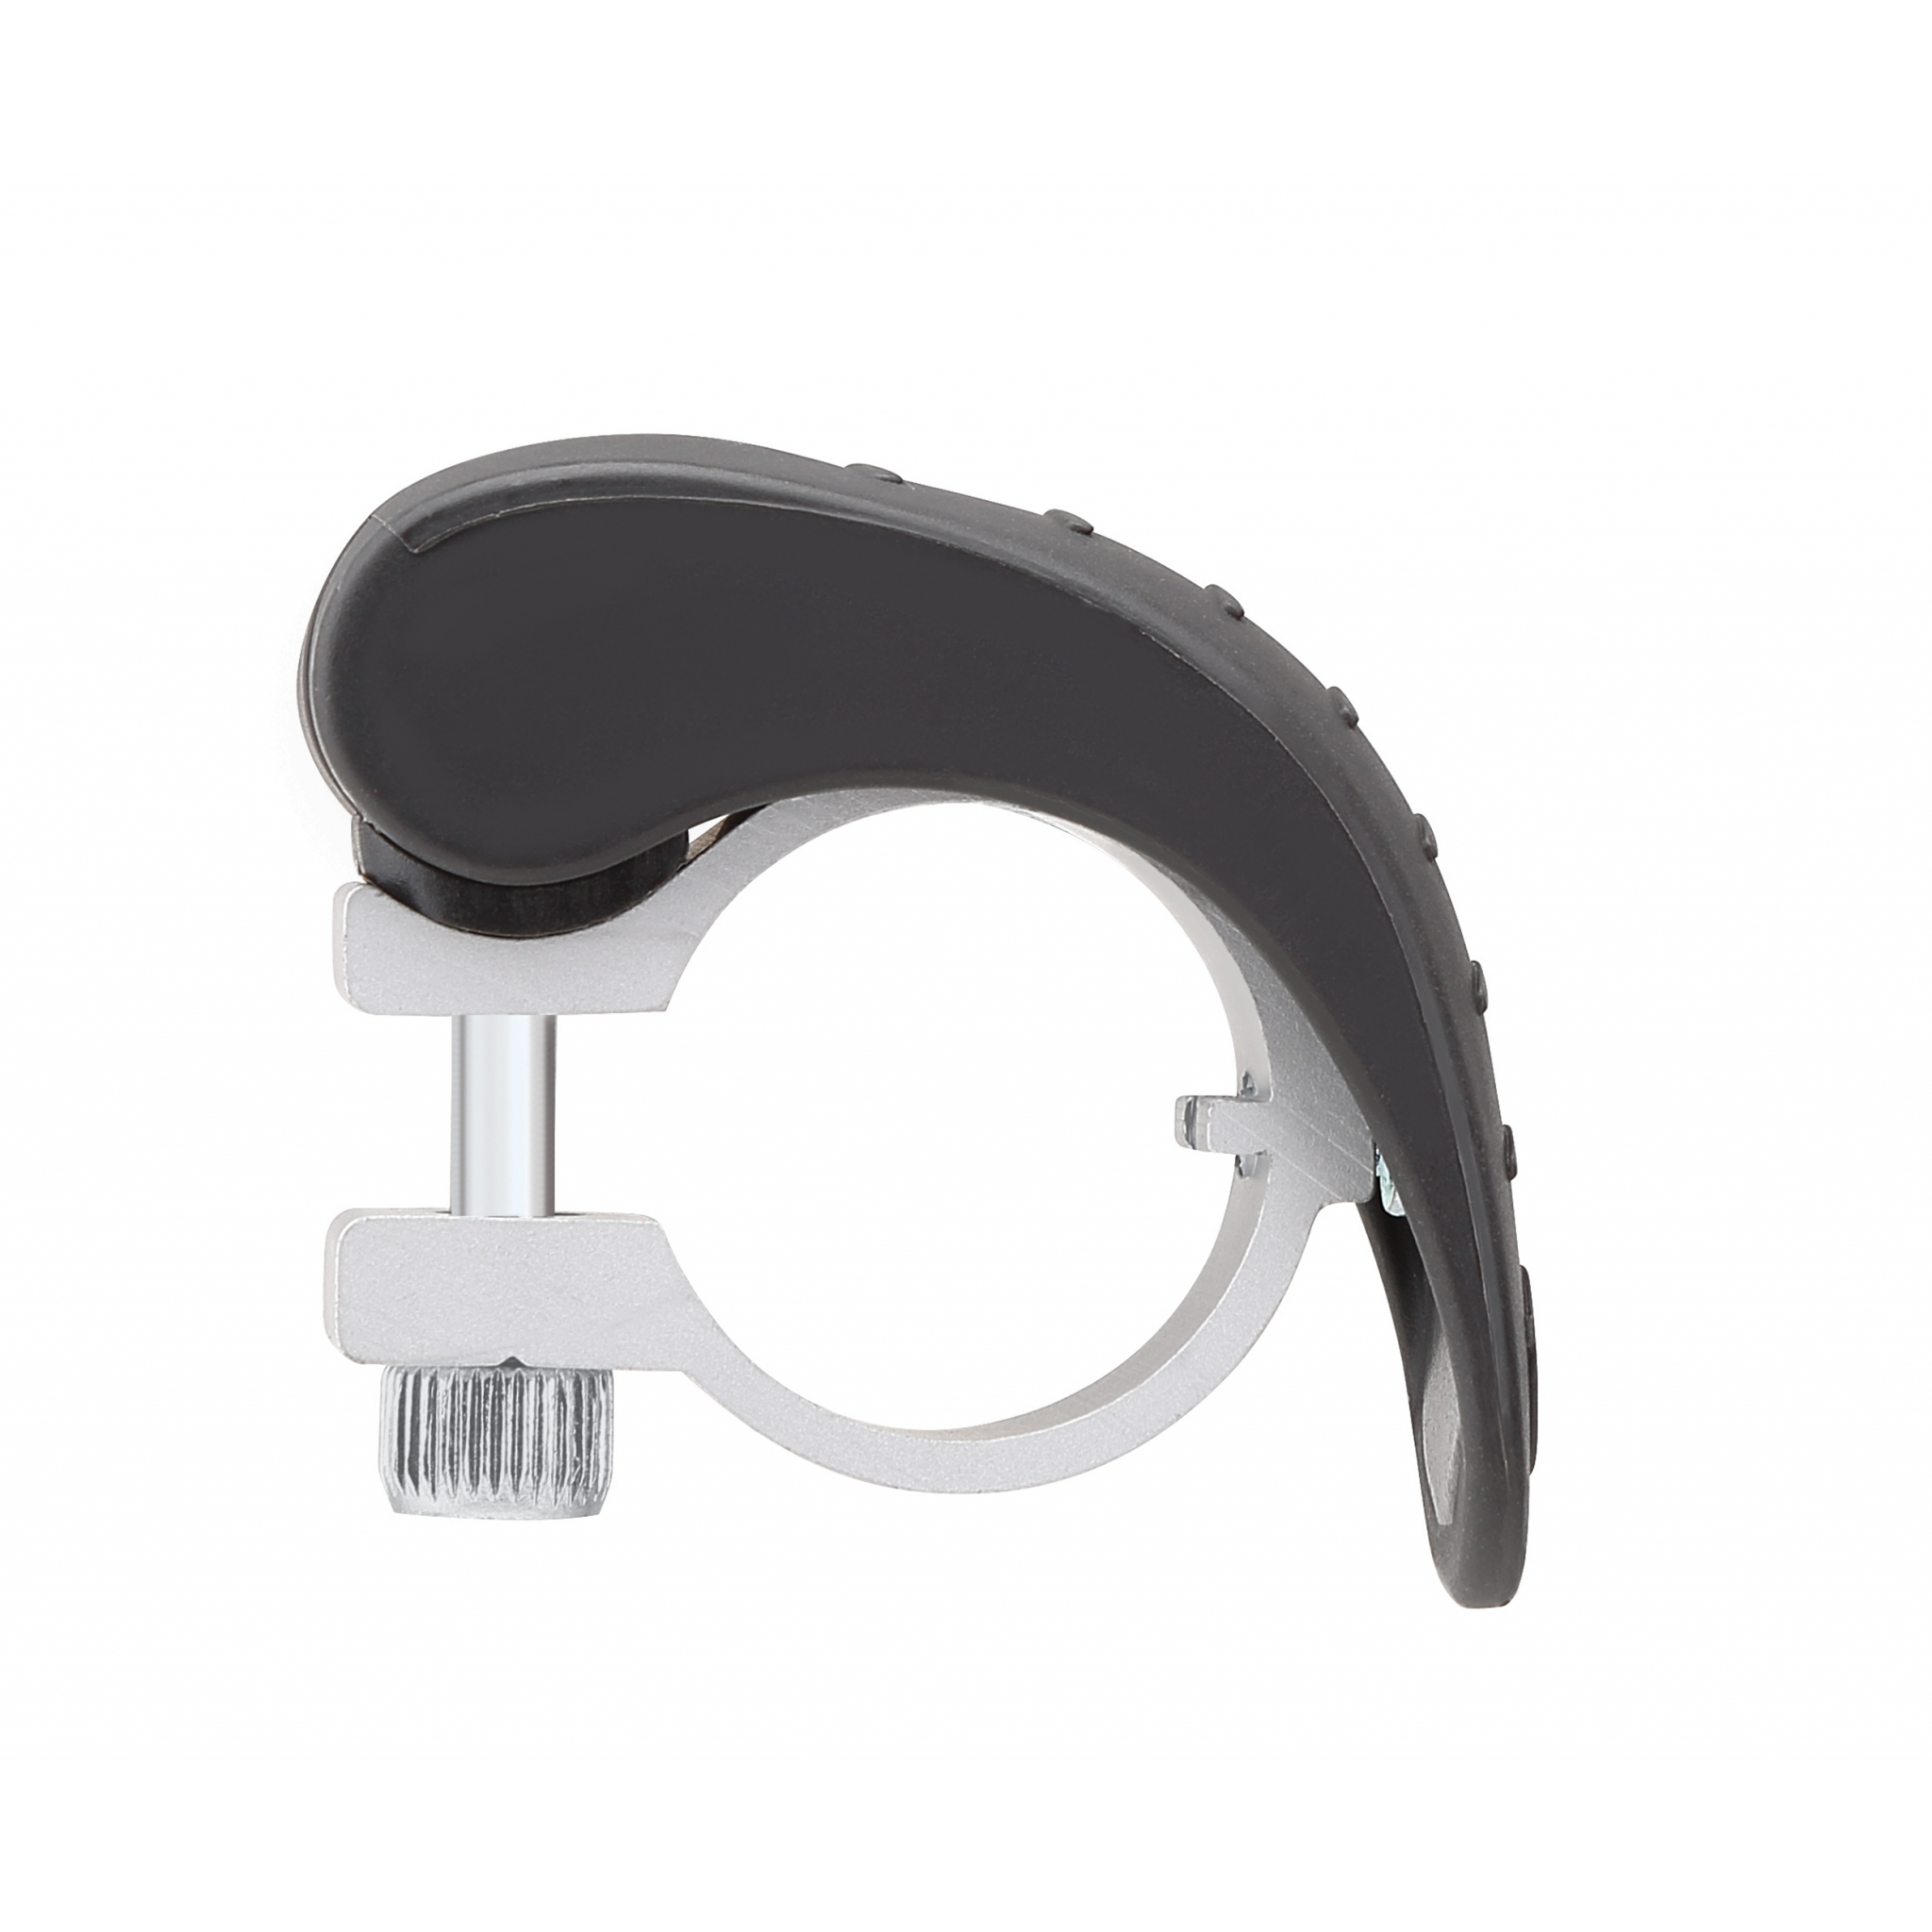 scooter t-bar clamp for Globber 3-wheel scooters and FLOW scooters 0